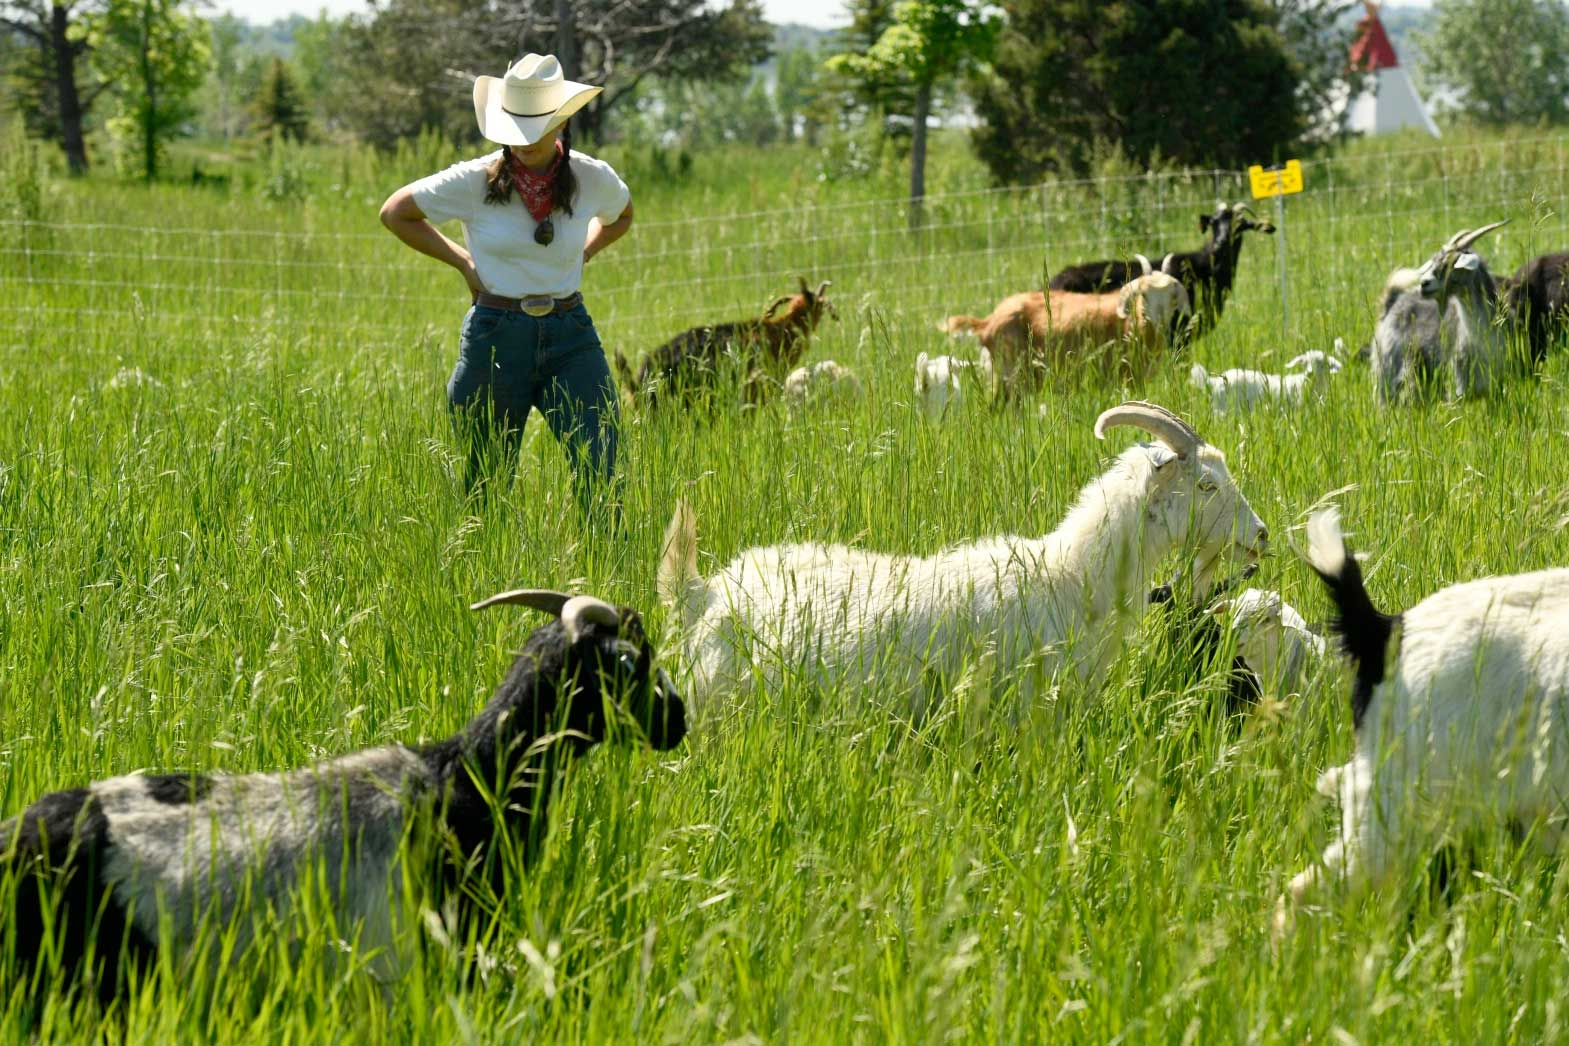 The Denver Post Here's why you might see hundreds of hungry goats while hiking at Standley Lake